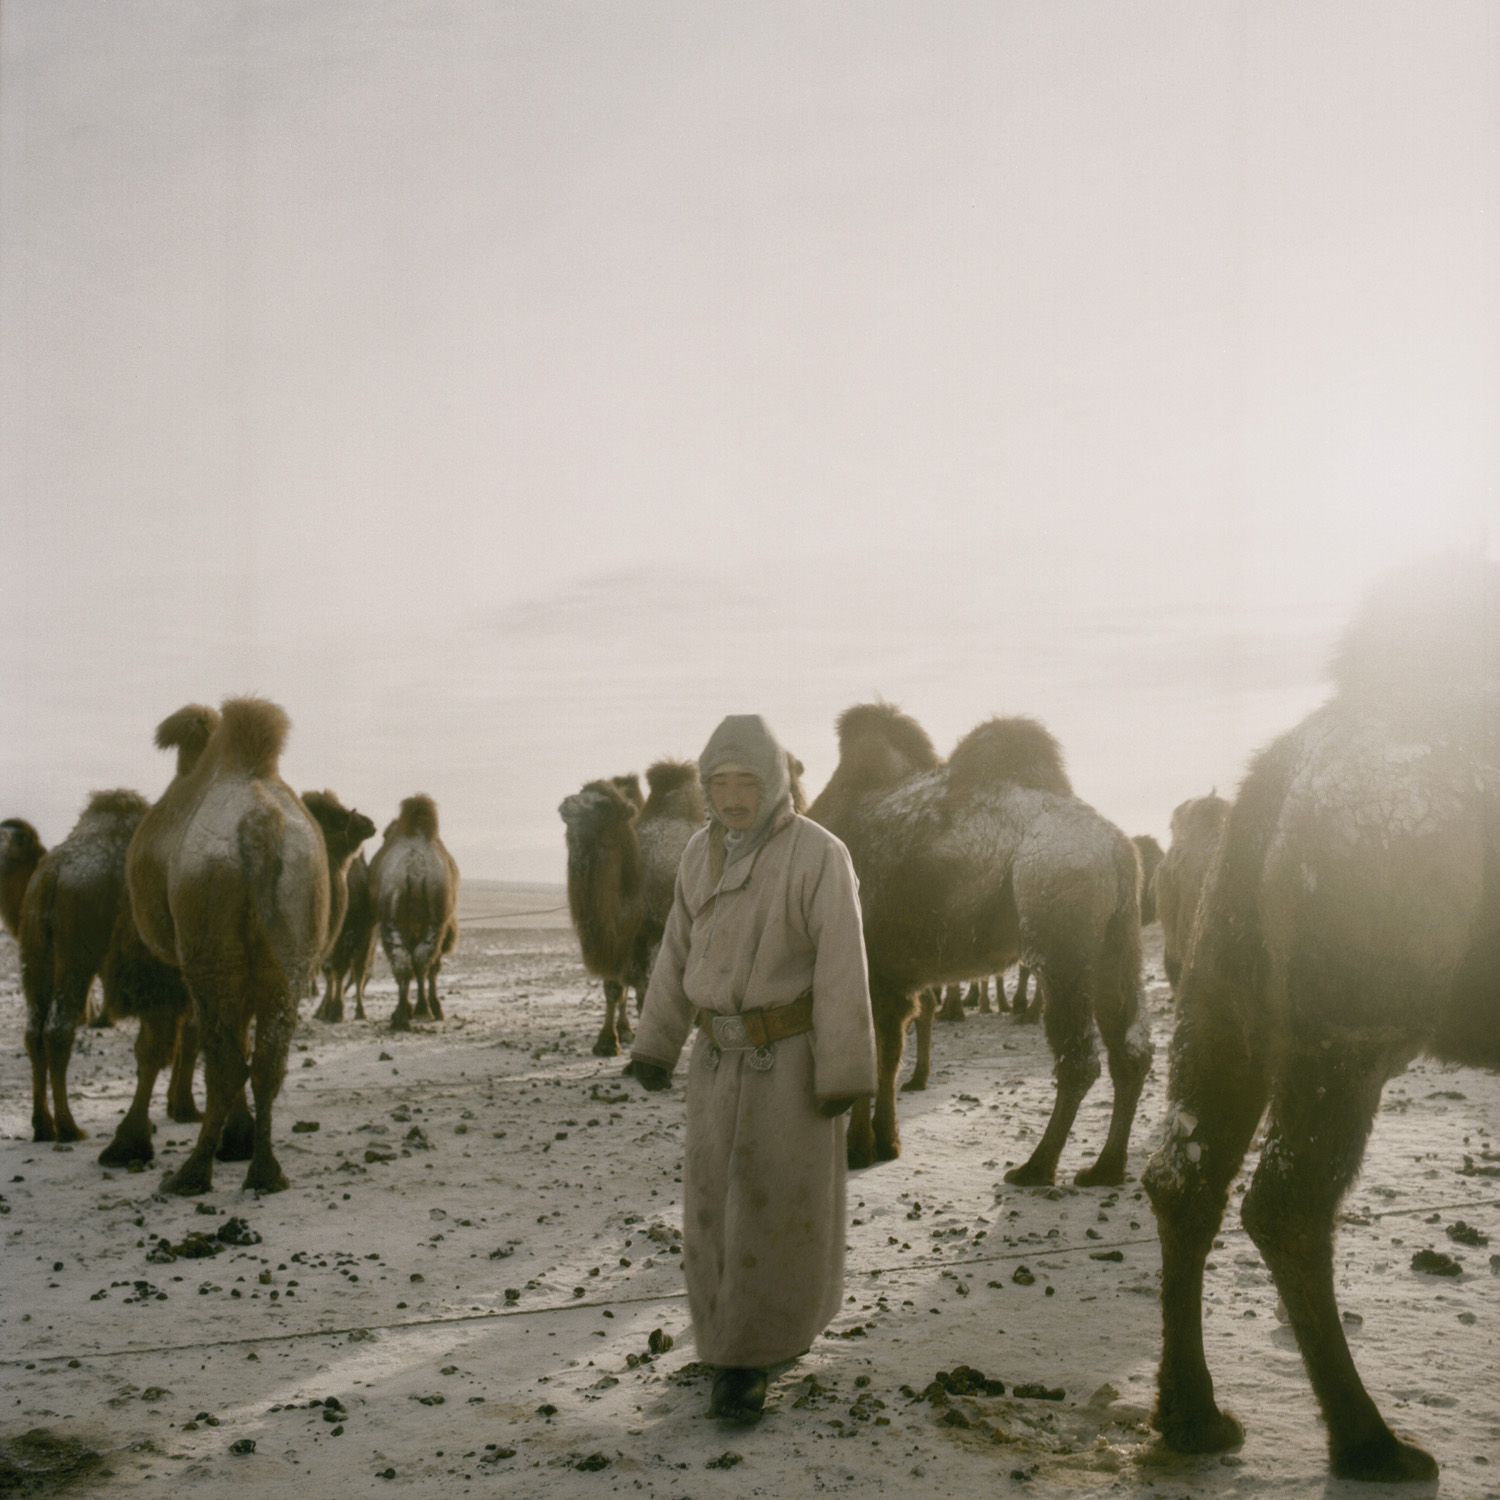 Tuvshinbayar milks camels before night. Mongolia, Gobi, Omongov, 2013.